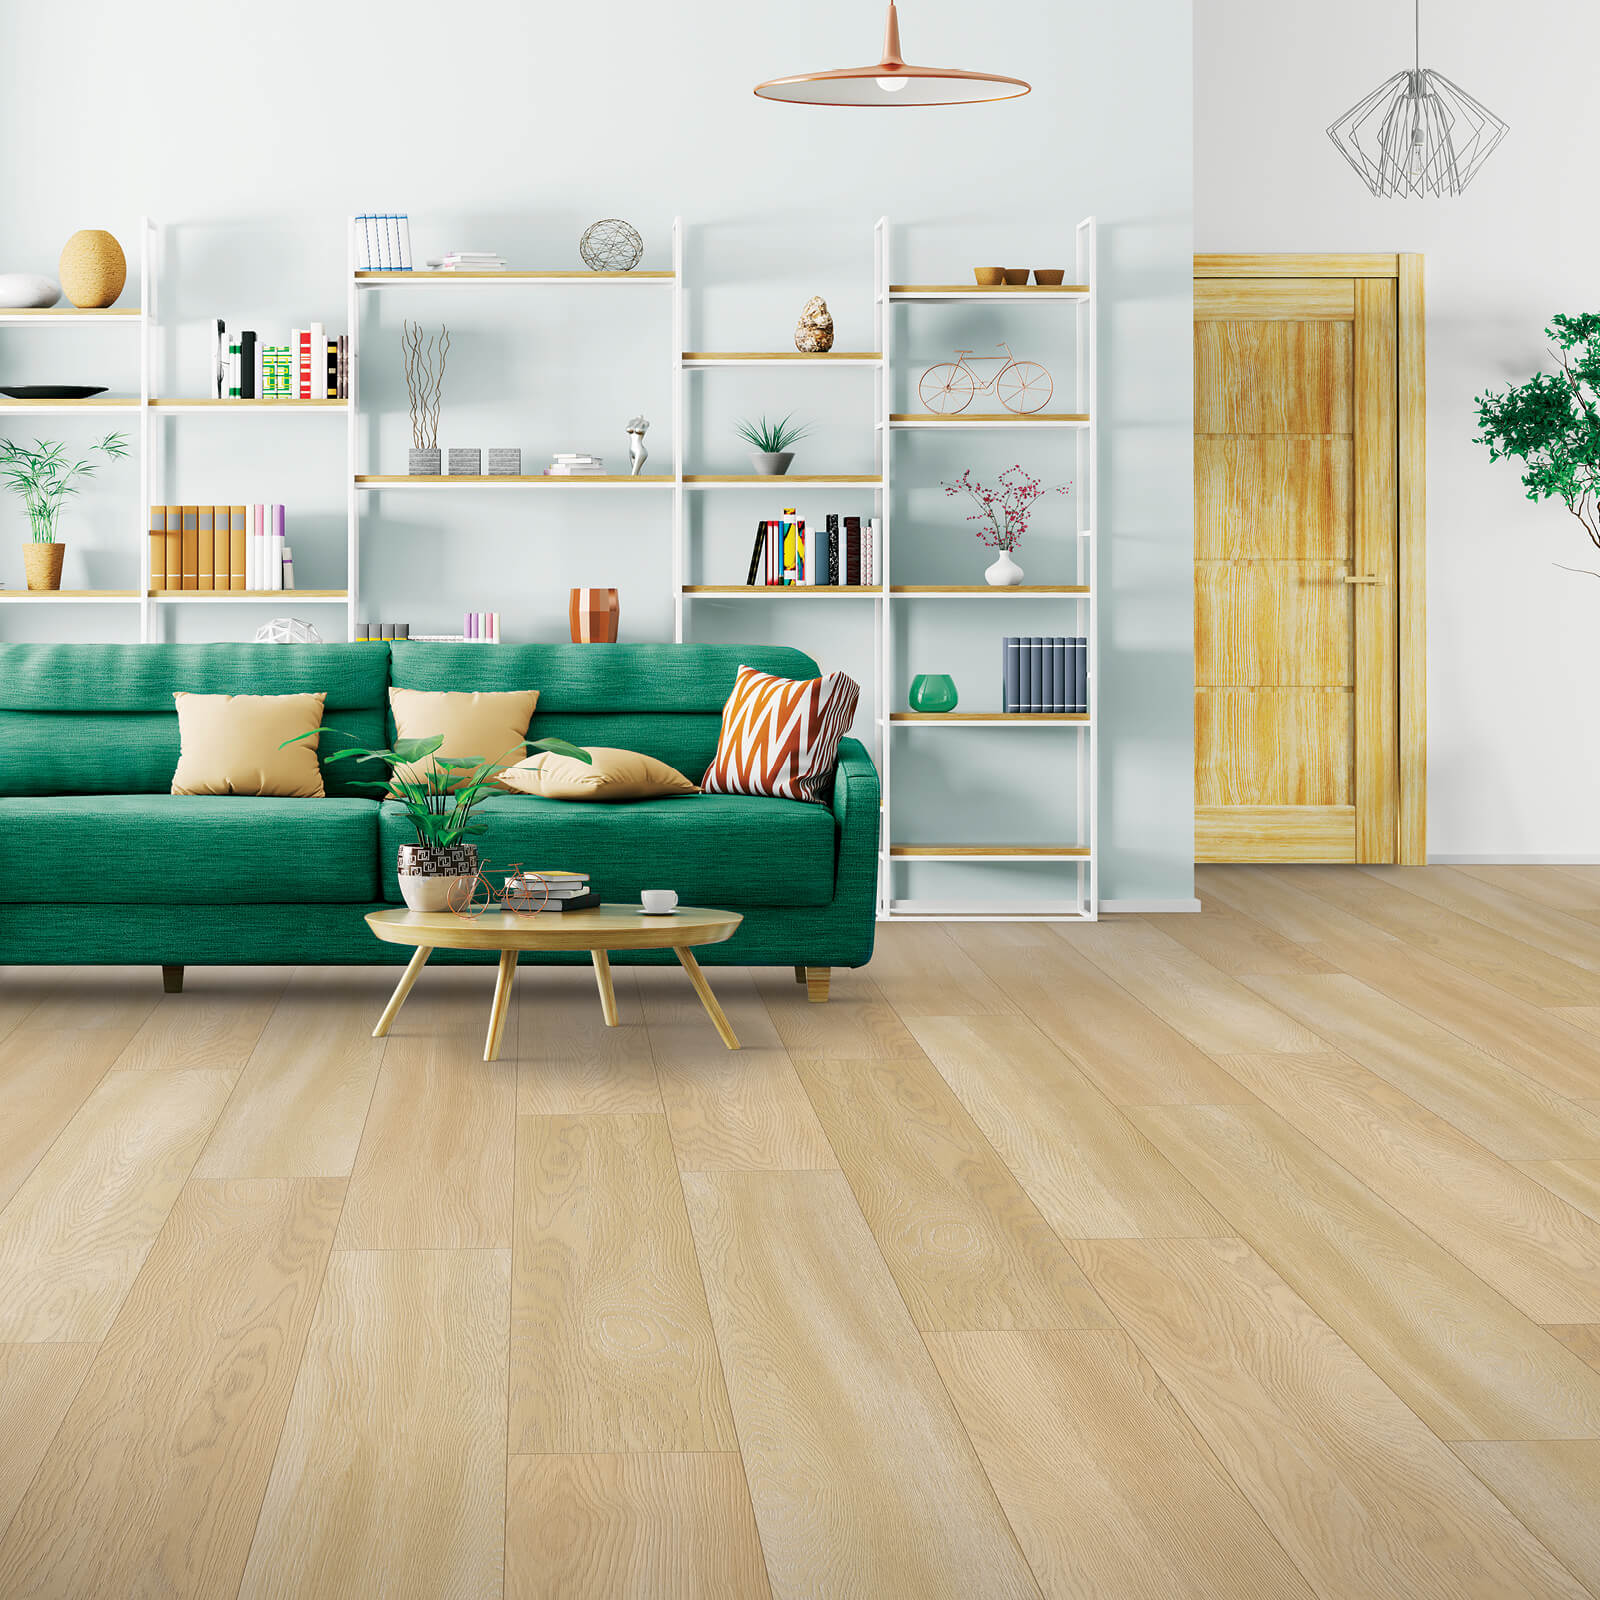 Green couch flooring | Dolphin Carpet & Tile